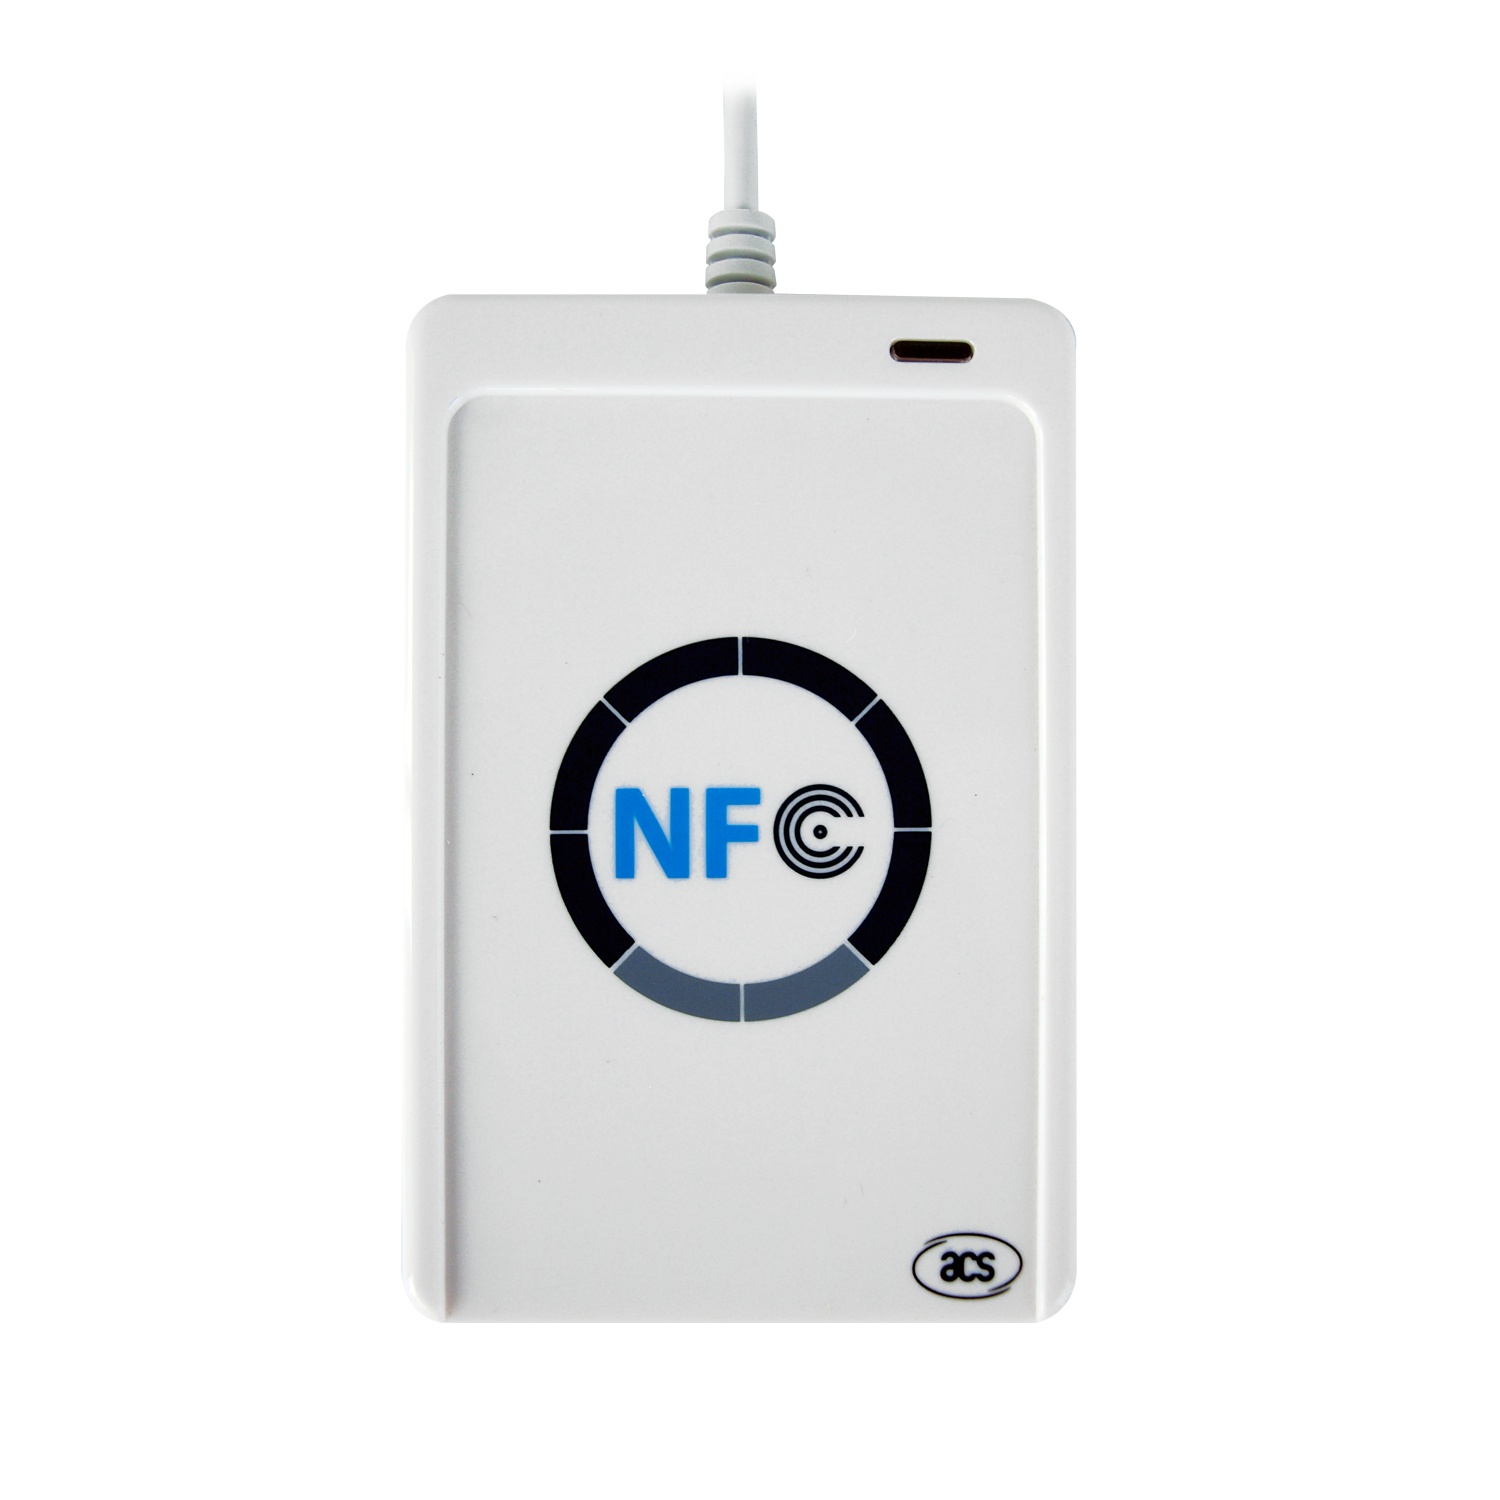 ACR122U NFC reader/writer